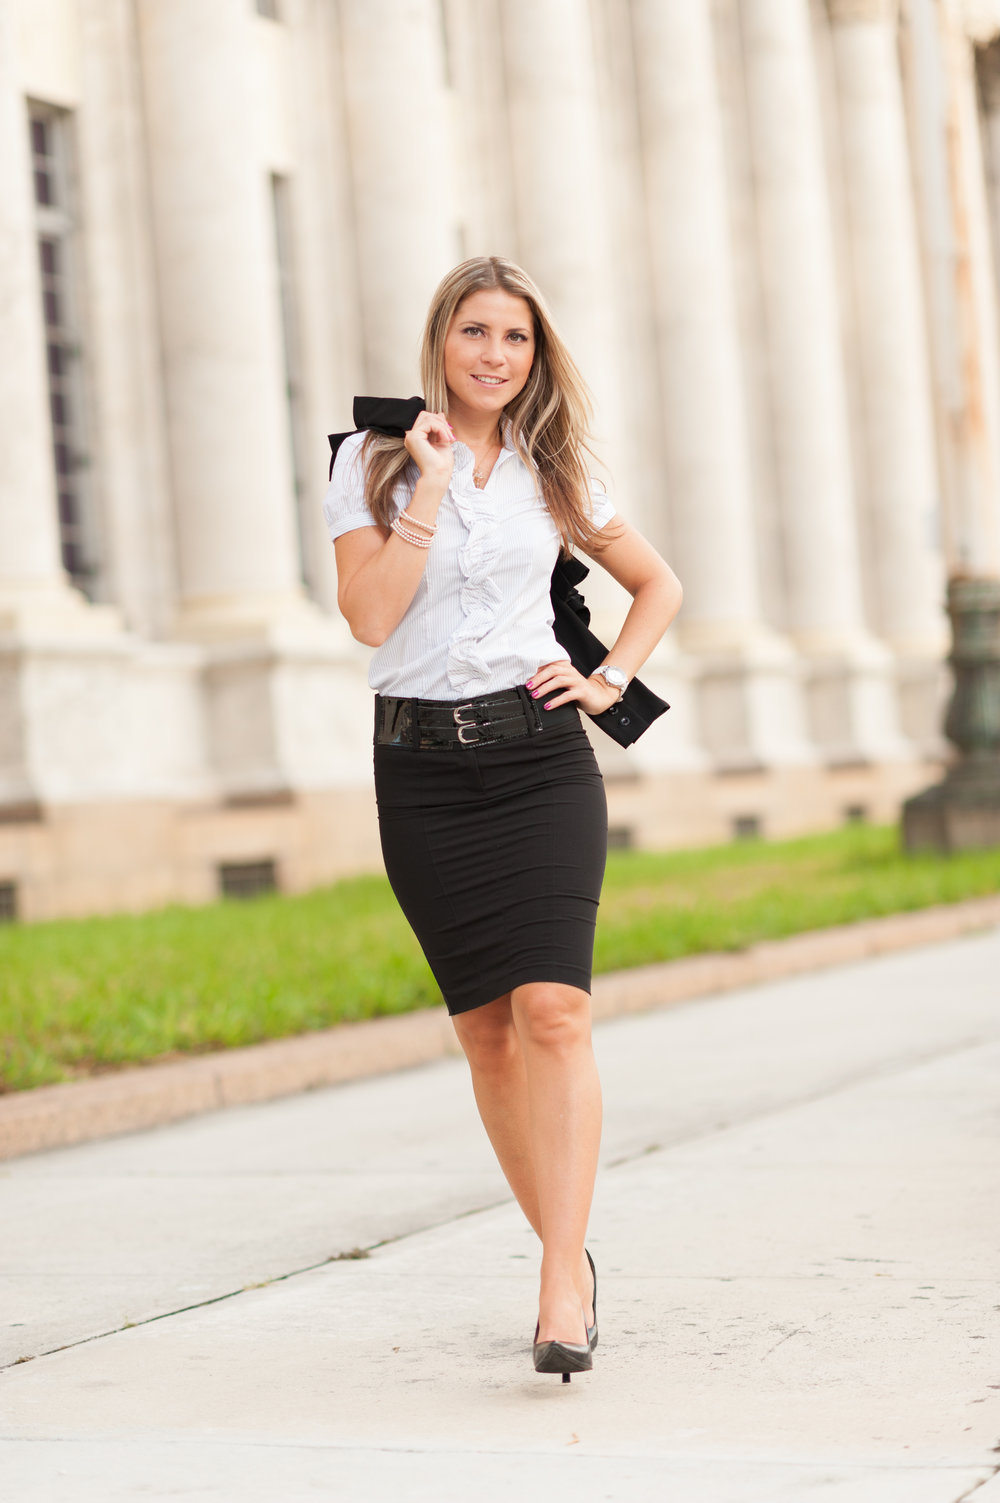 shutterstock_501488587 - BUSINESSWOMAN COURTHOUSE.jpg